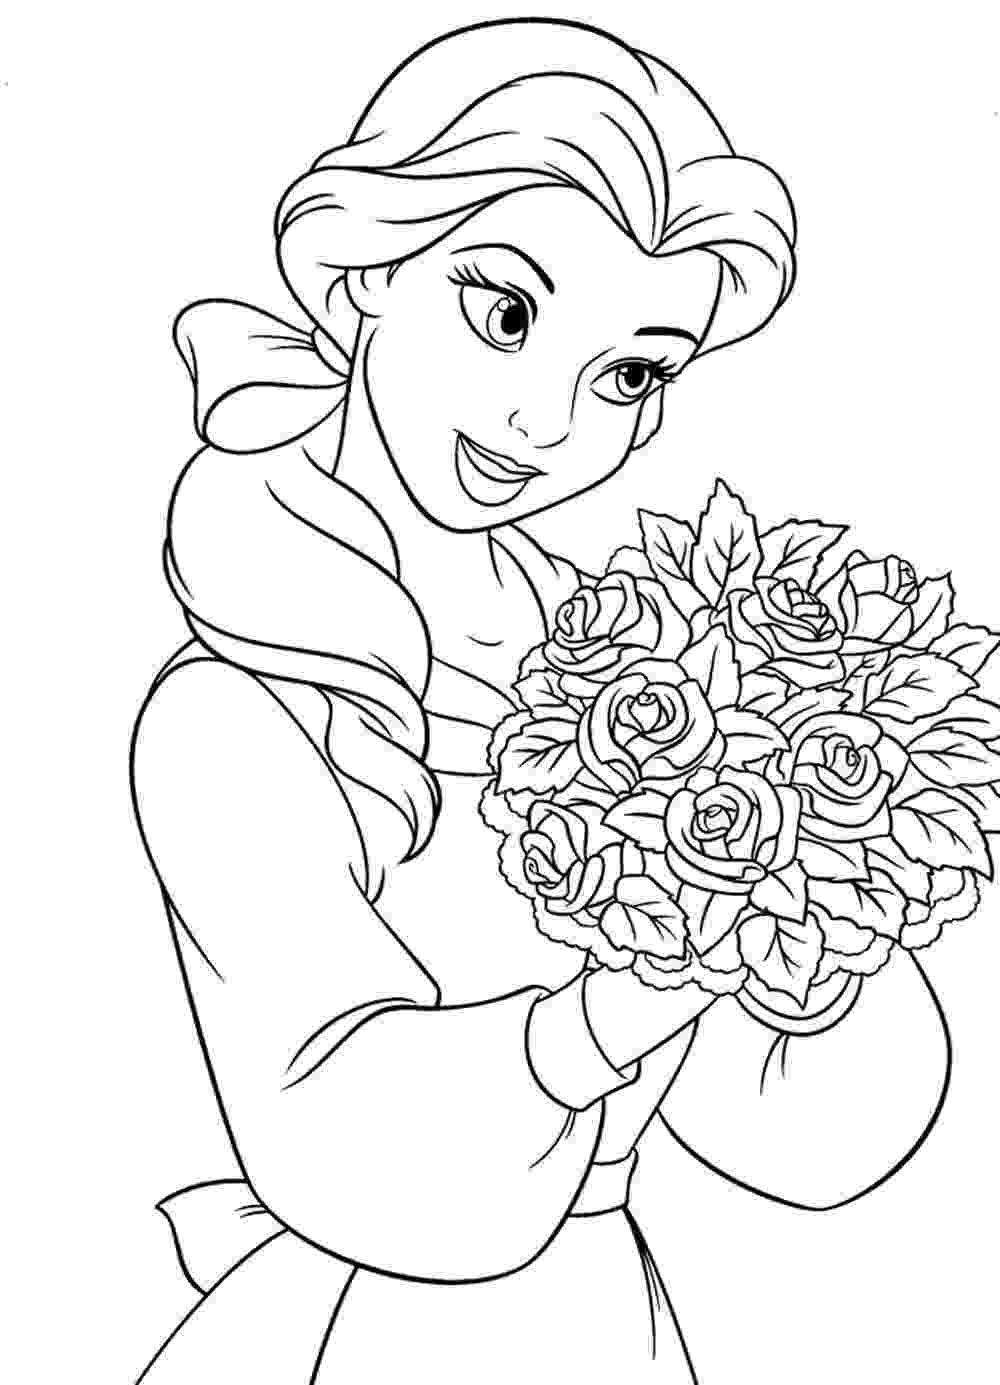 colering pages for girls with barbie coloring pages online your little girls pages for girls colering